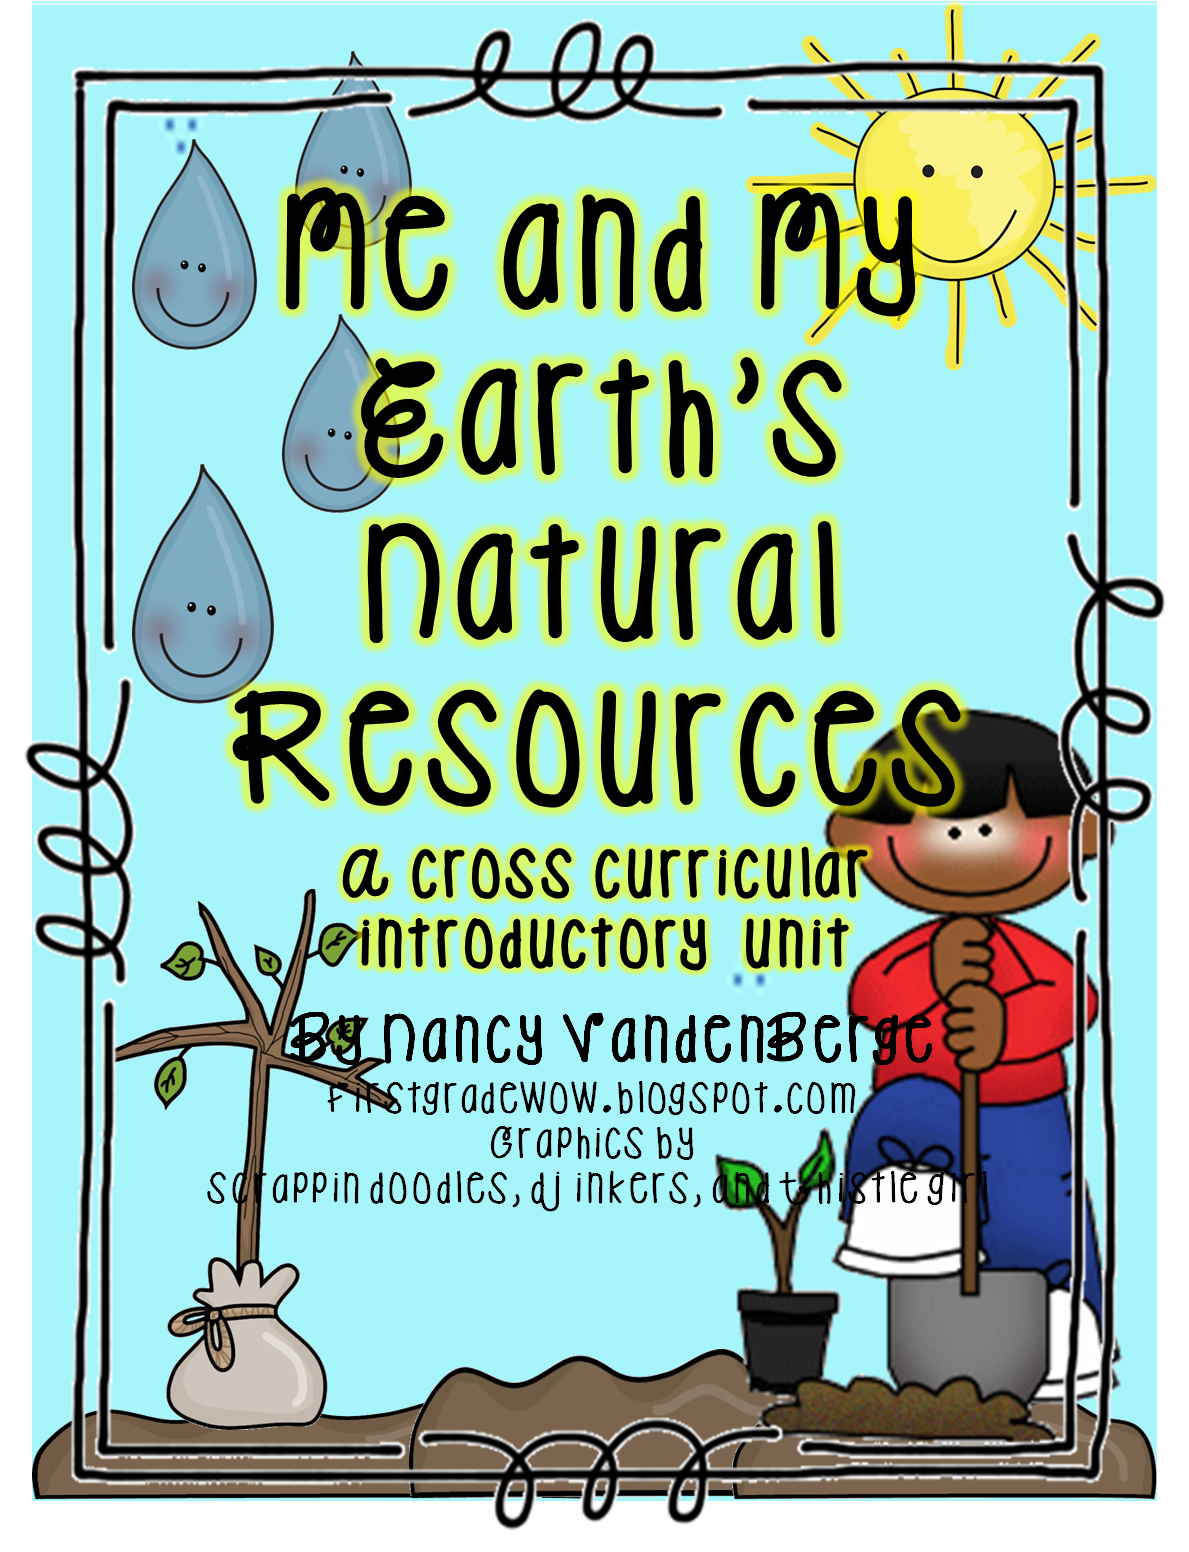 Natural Resources (First Grade Wow) Natural resources